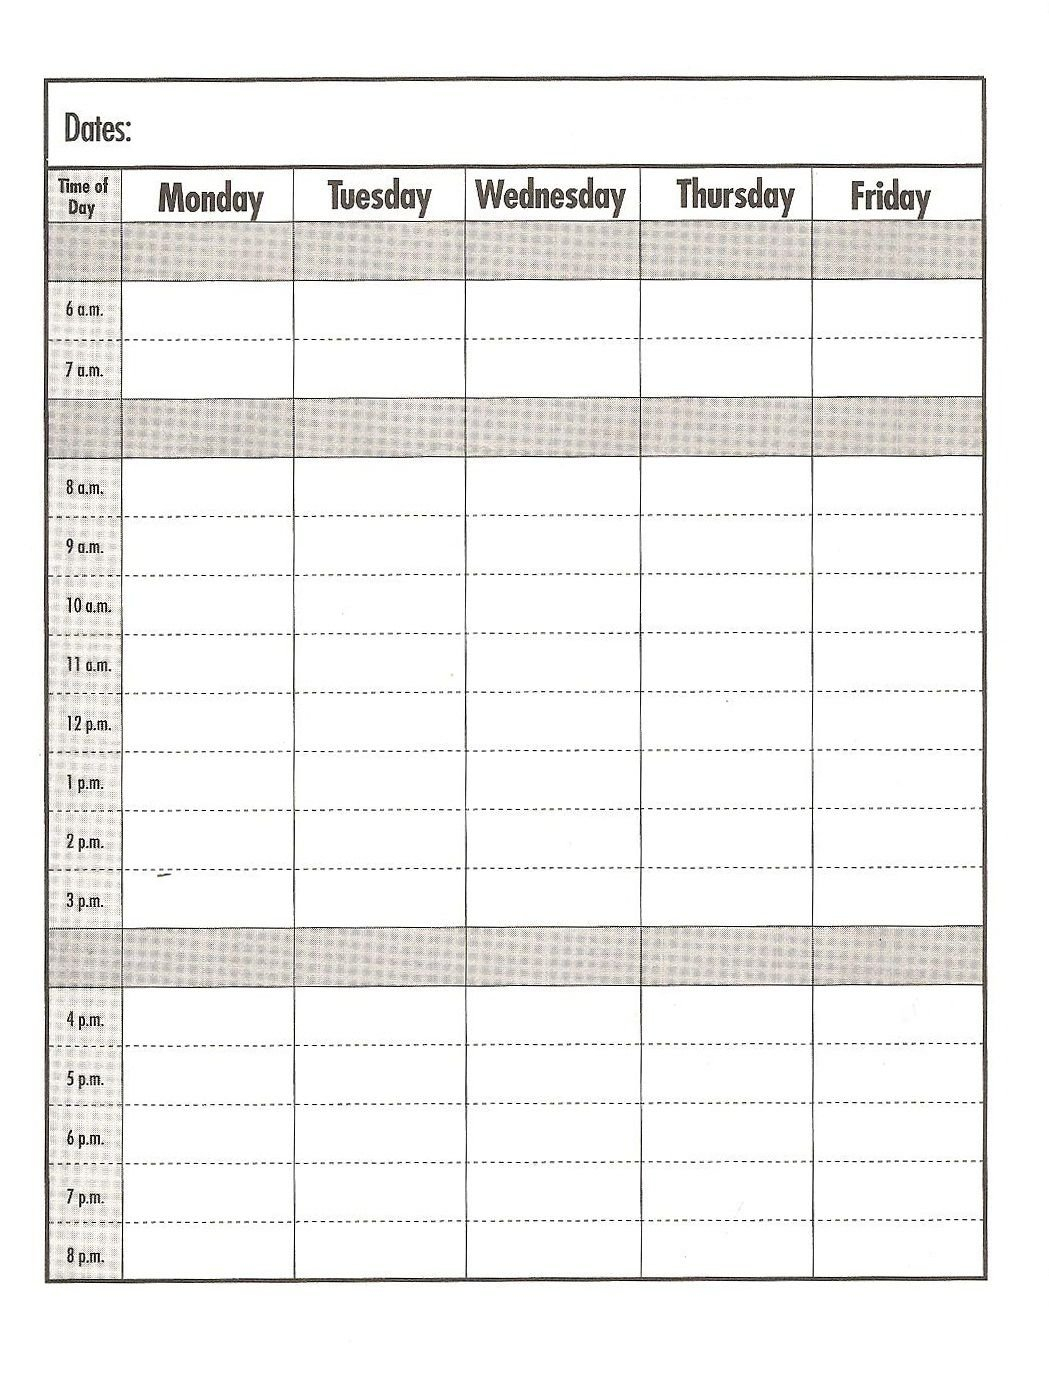 Weekday Schedule With Time Slots - Calendar Inspiration Design Fill Out A Calender Online And Print Out